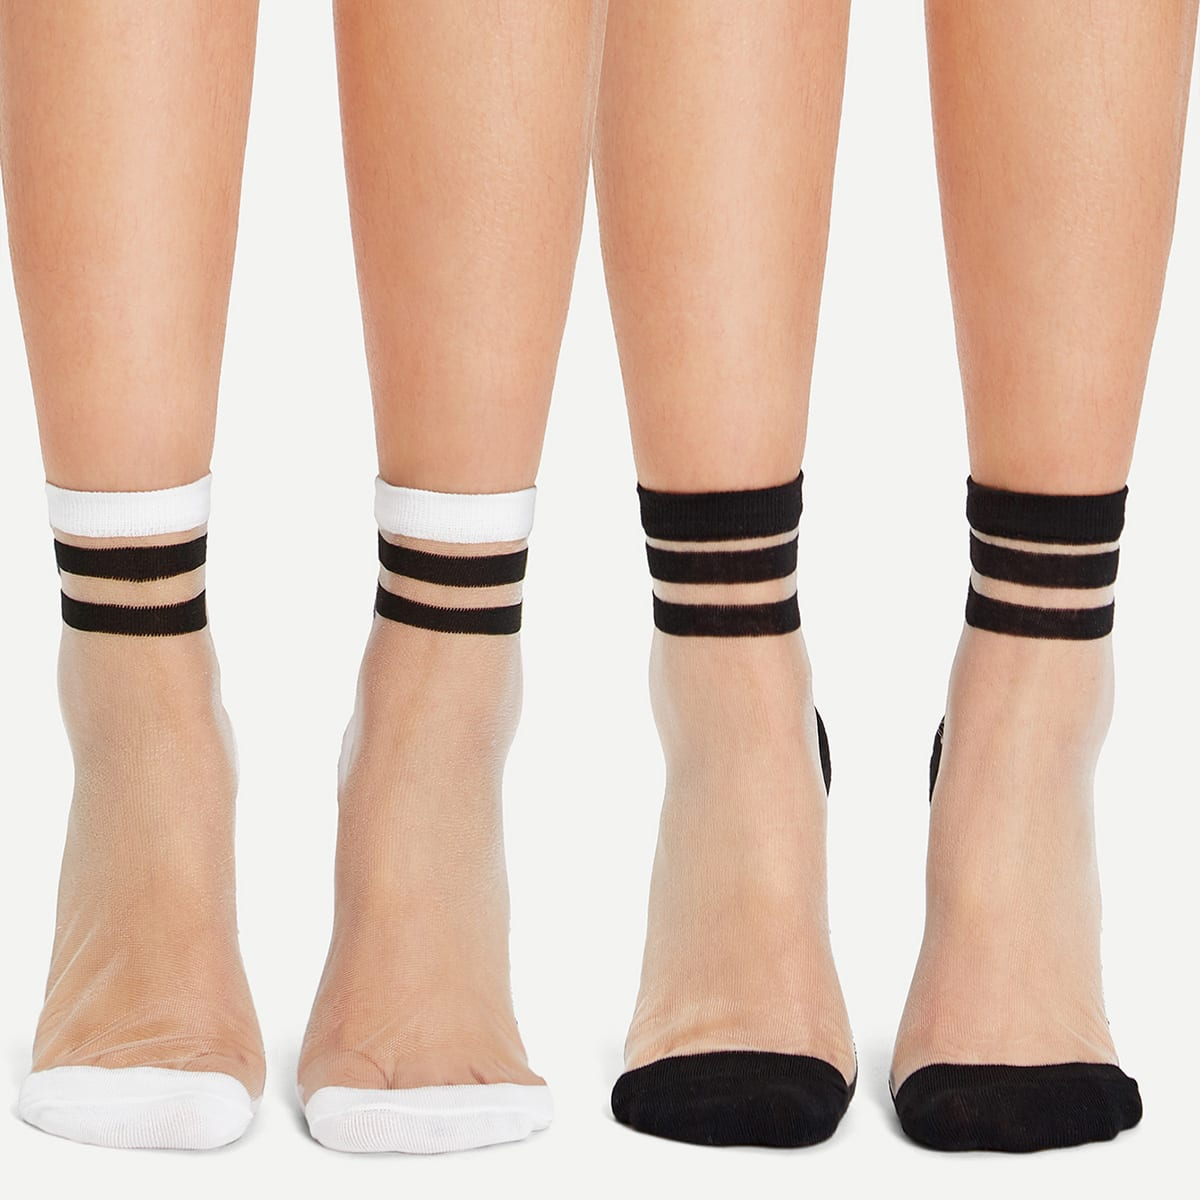 SHEIN coupon: Crystal Silk Ankle Socks 2pairs